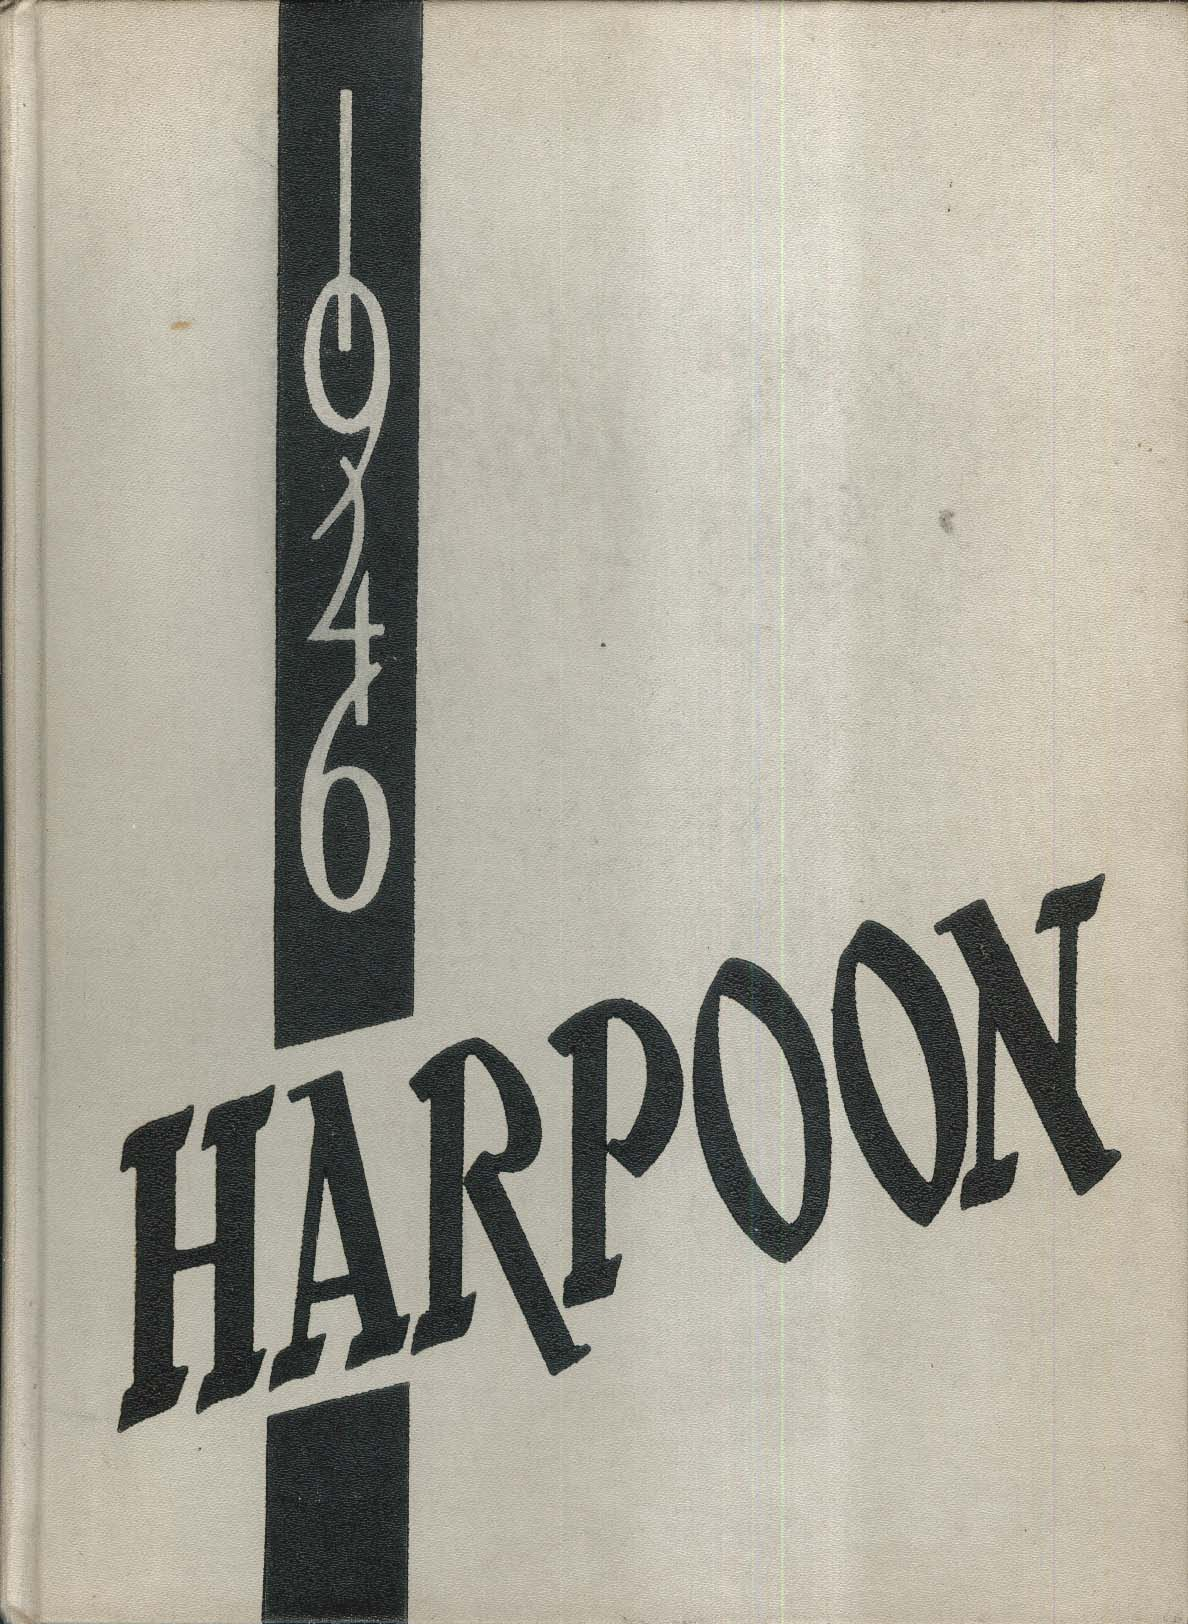 1946 Harpoon Harlan High School Harlan Iowa IA Yearbook